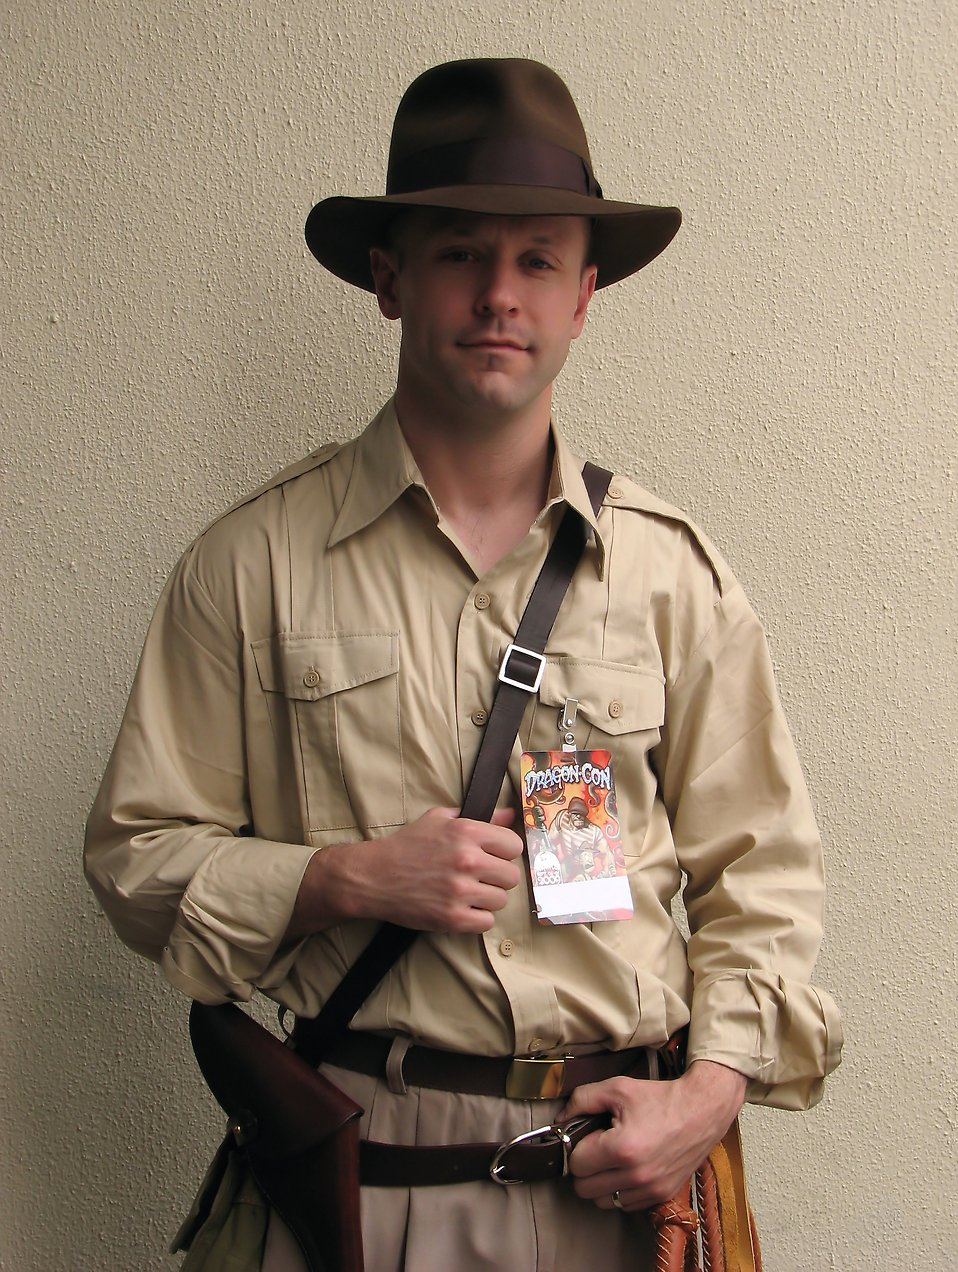 A man in an Indiana Jones costume at Dragoncon 2009 in Atlanta, Georgia : Free Stock Photo